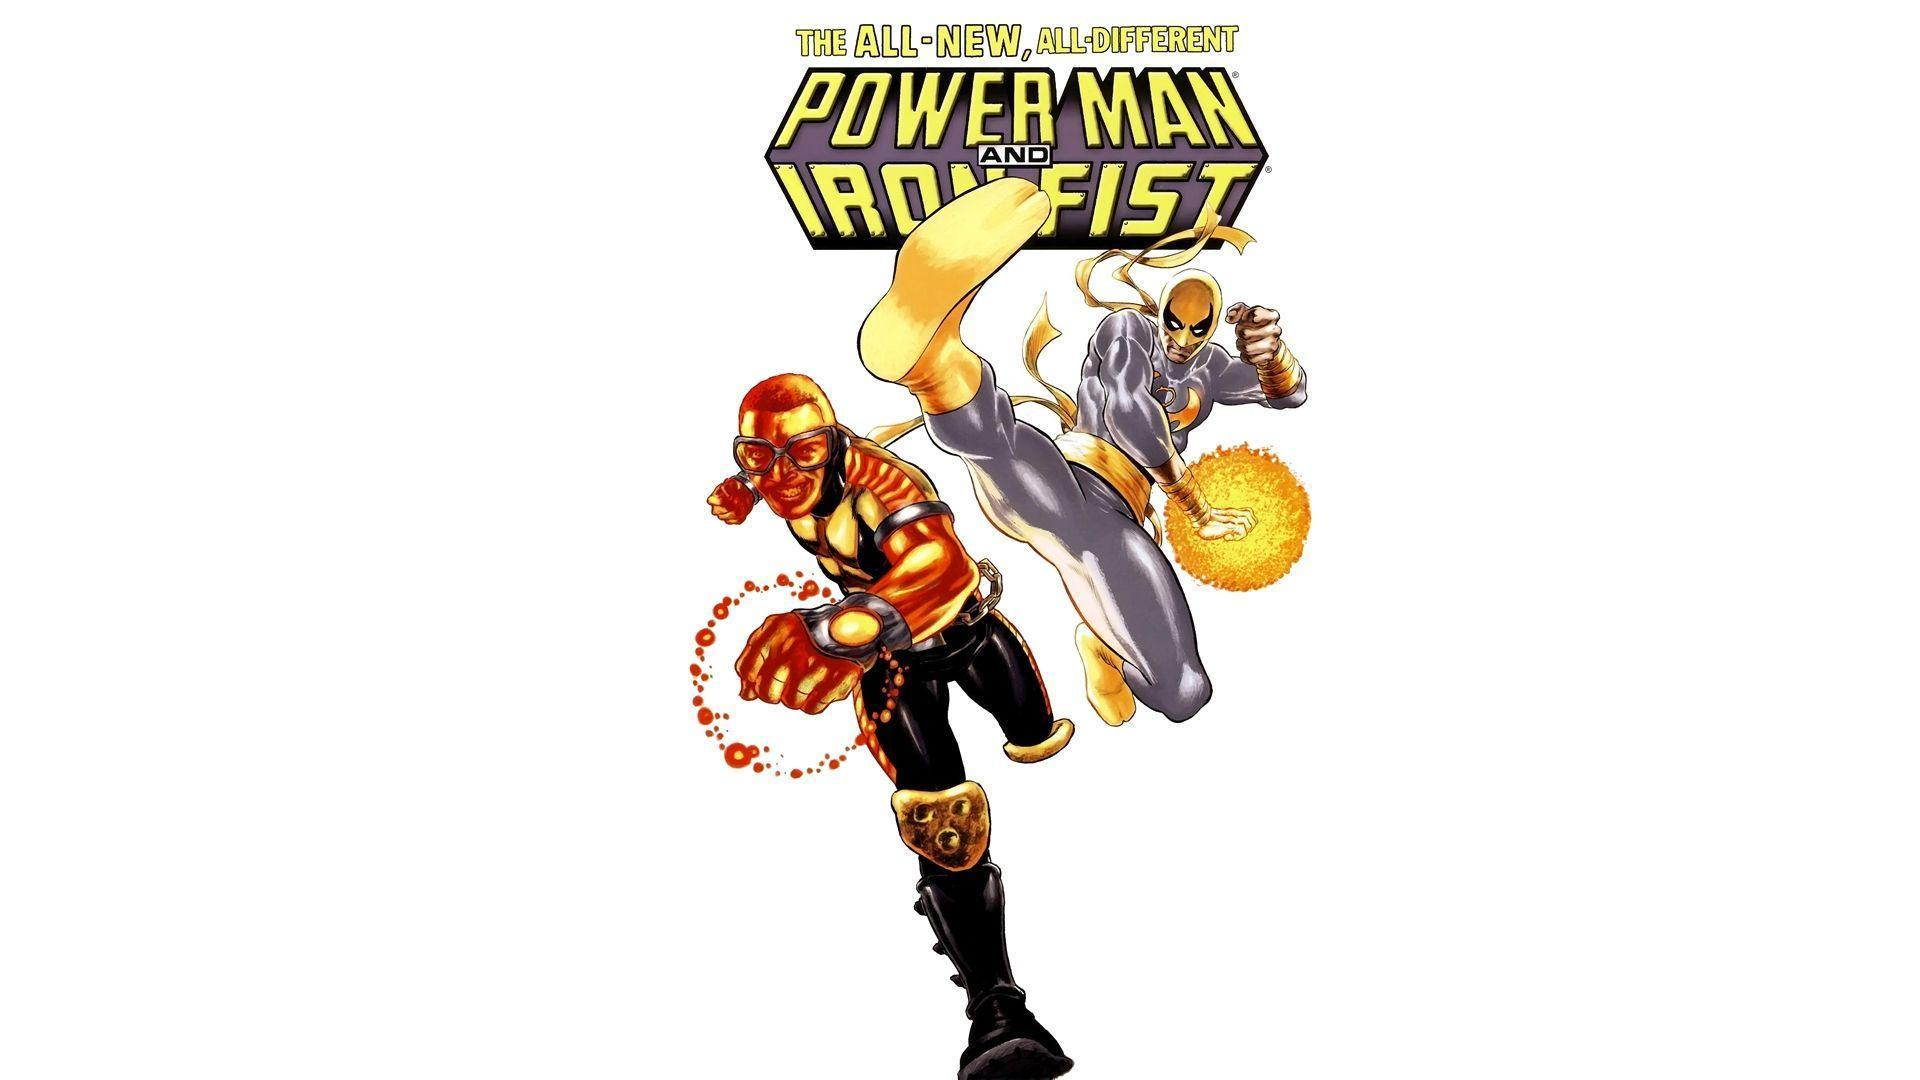 1 Power Man & Iron Fist HD Wallpapers | Backgrounds - Wallpaper Abyss